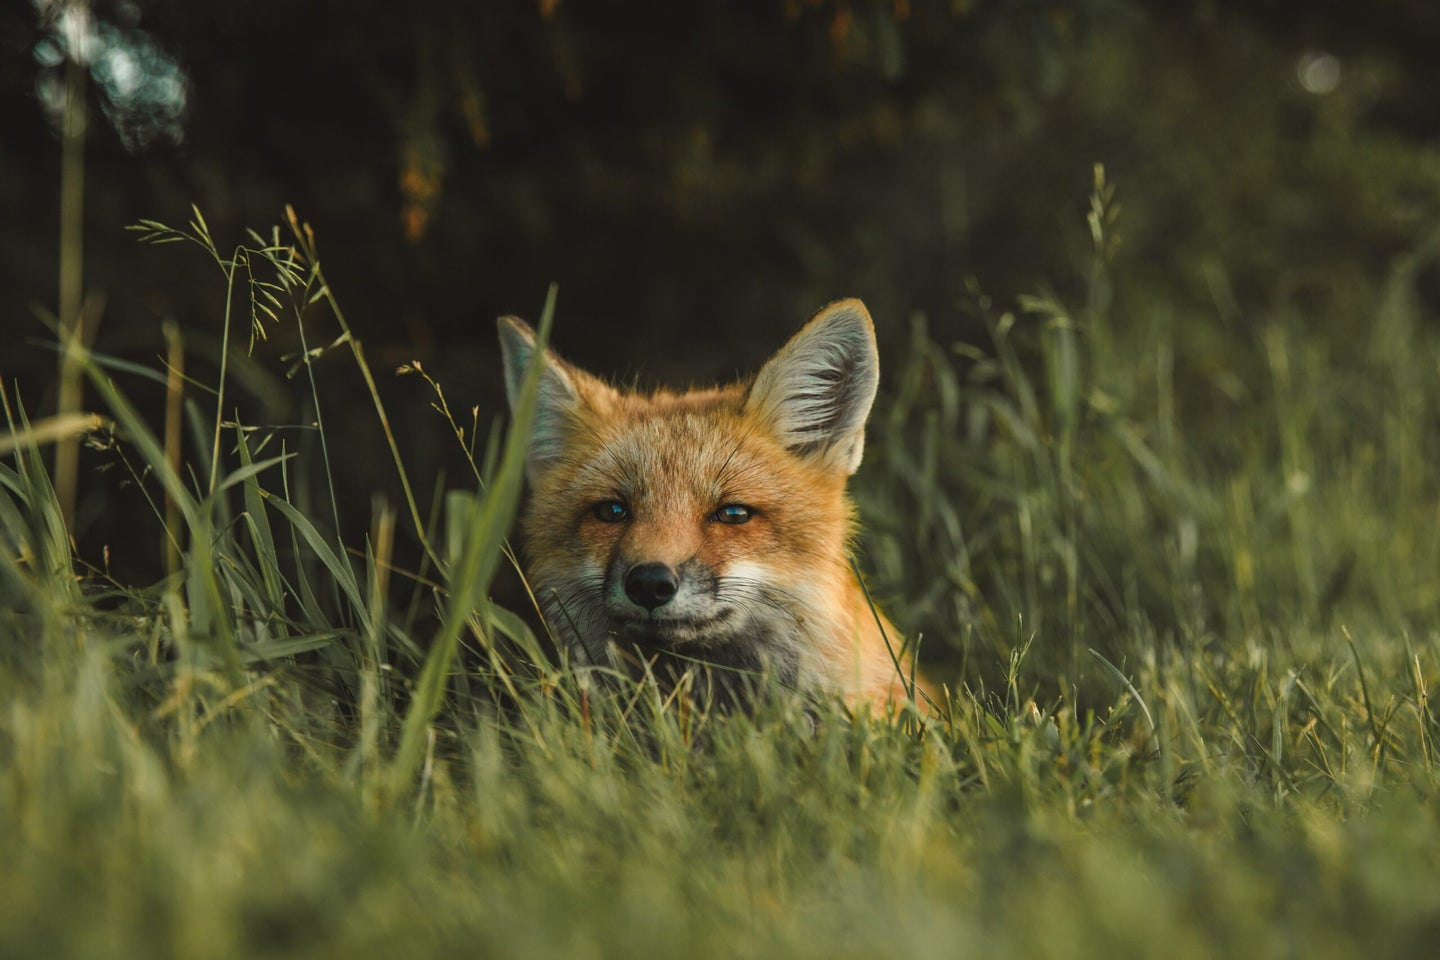 A fox sitting in some grass.